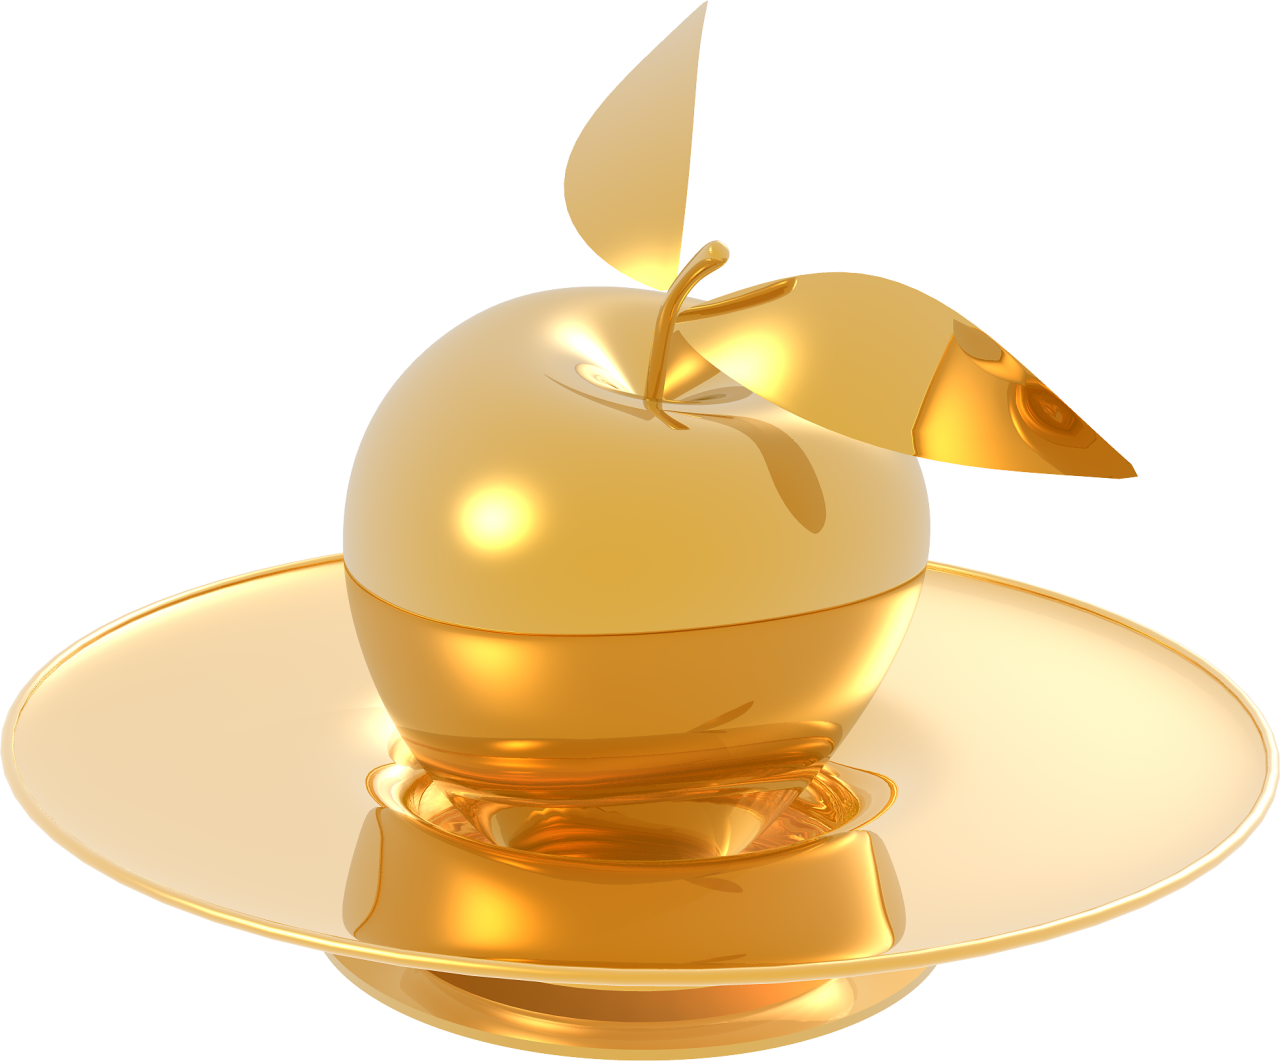 Gold Made Apple and Plate PNG Image